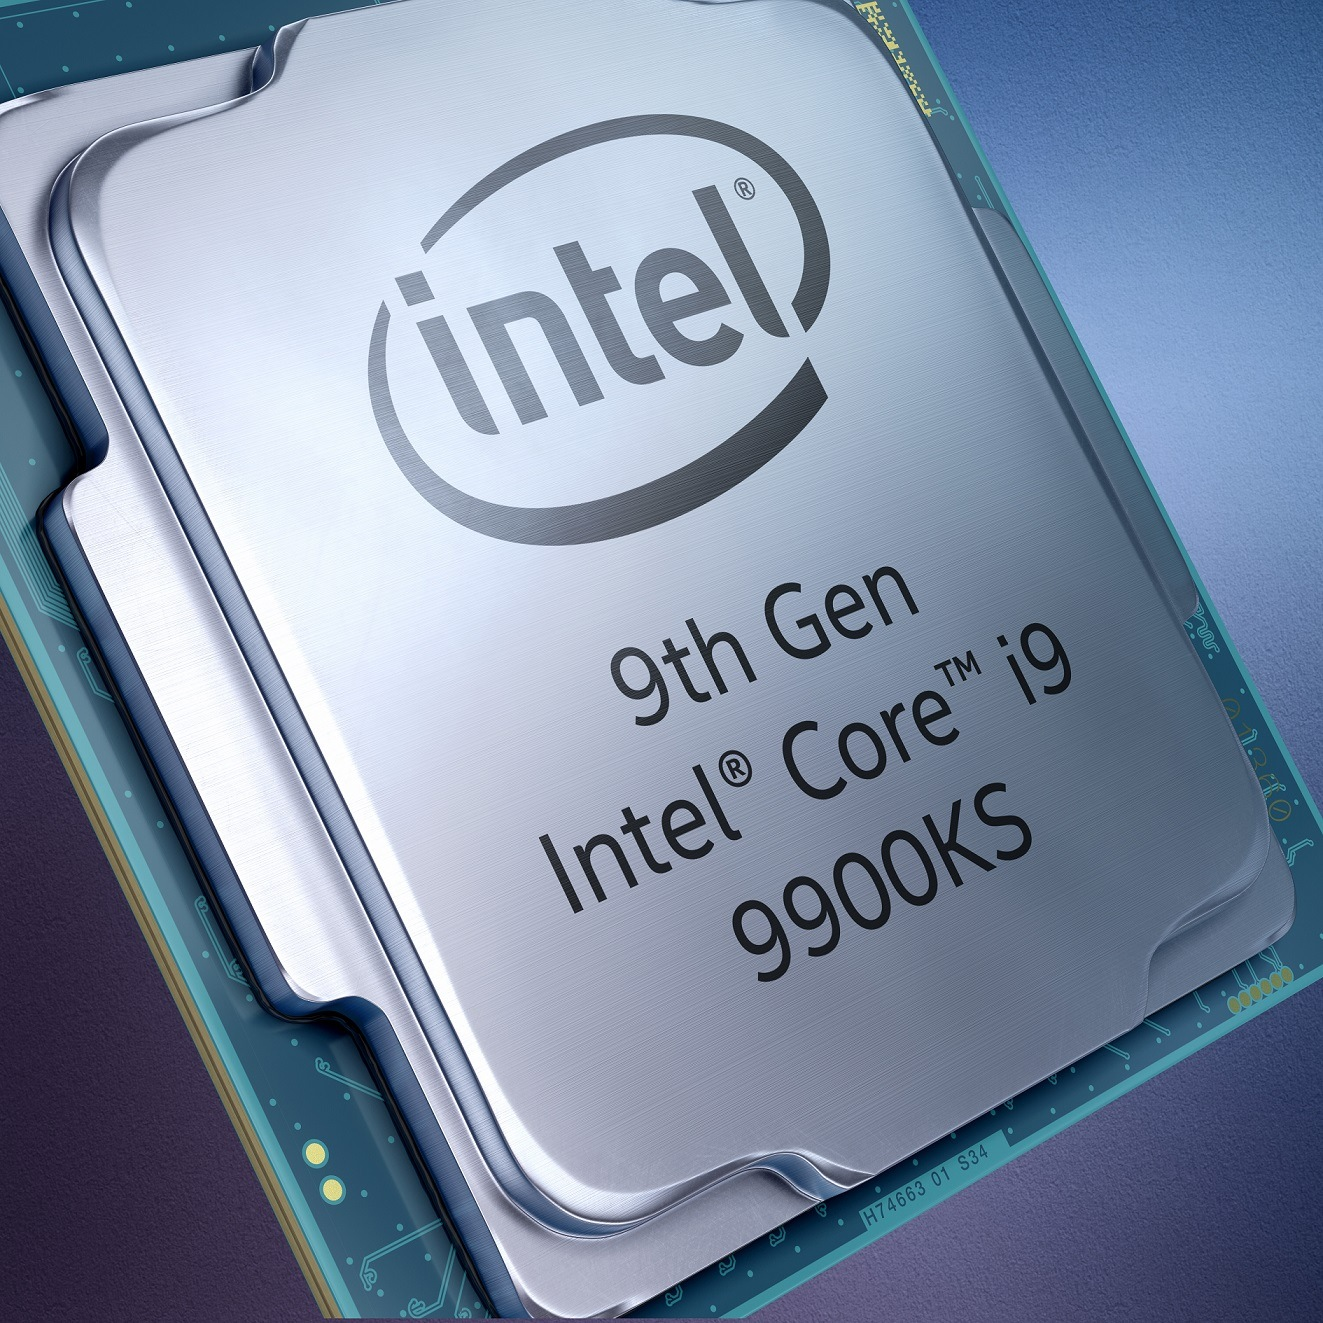 191029_9th Gen Intel Core i9-9900KS Special Edition Processor Available Oct 30th_Contents_1